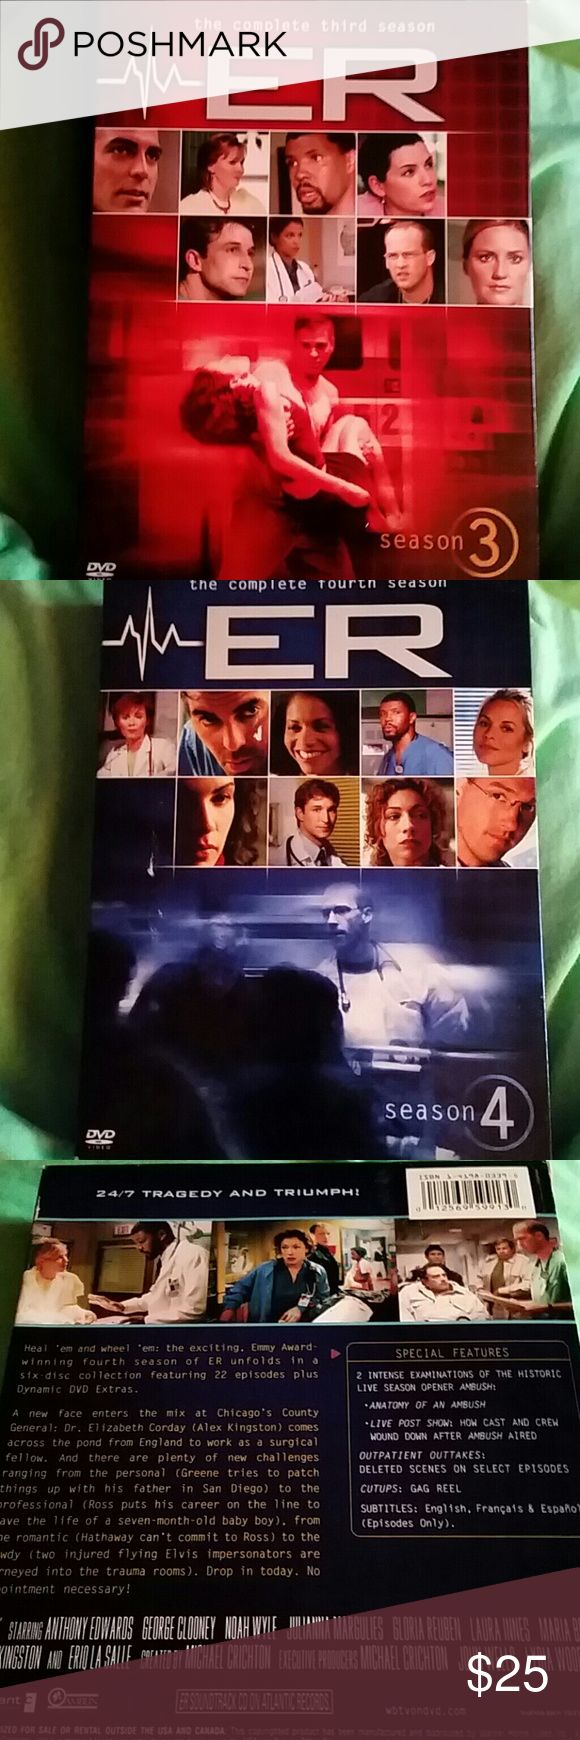 ER THE COMPLETE 3RD AND 4TH SEASON DVD SETS Like new Other